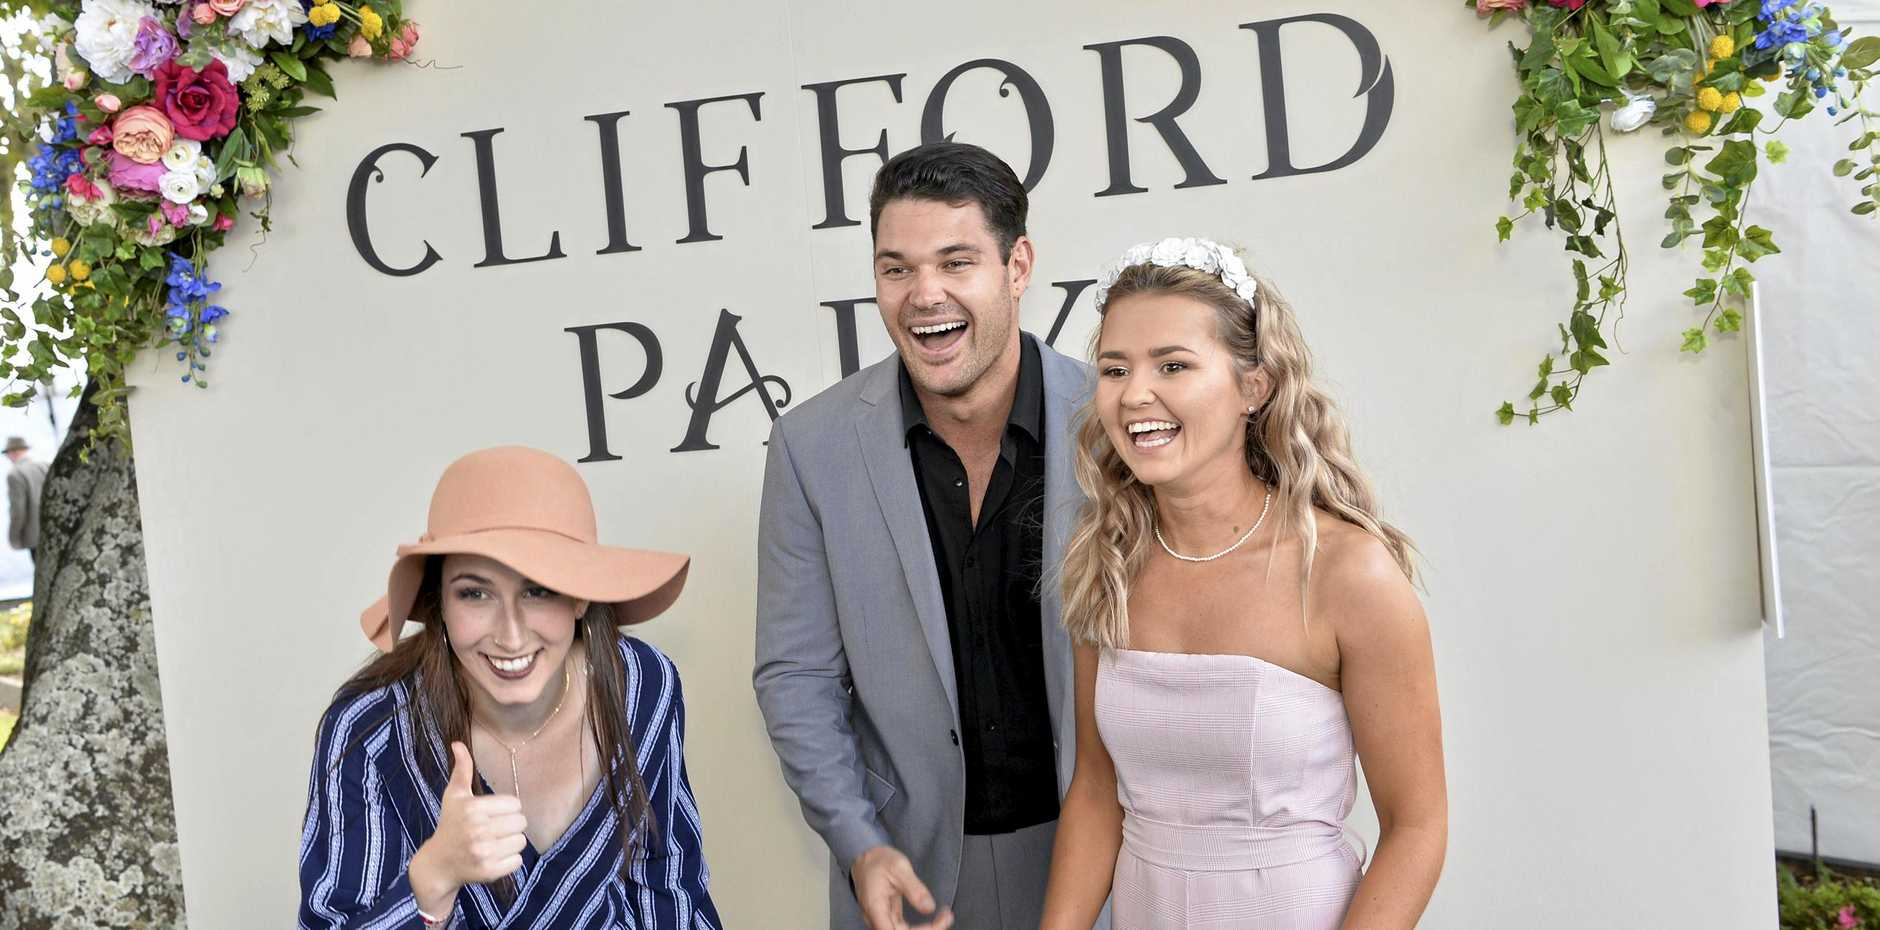 Bachelorette star Apollo Jackson plays up to the photo booth camera with Katherine Sampson (left) and Ash Cavanagh on Weetwood day at Clifford Park Racecourse.